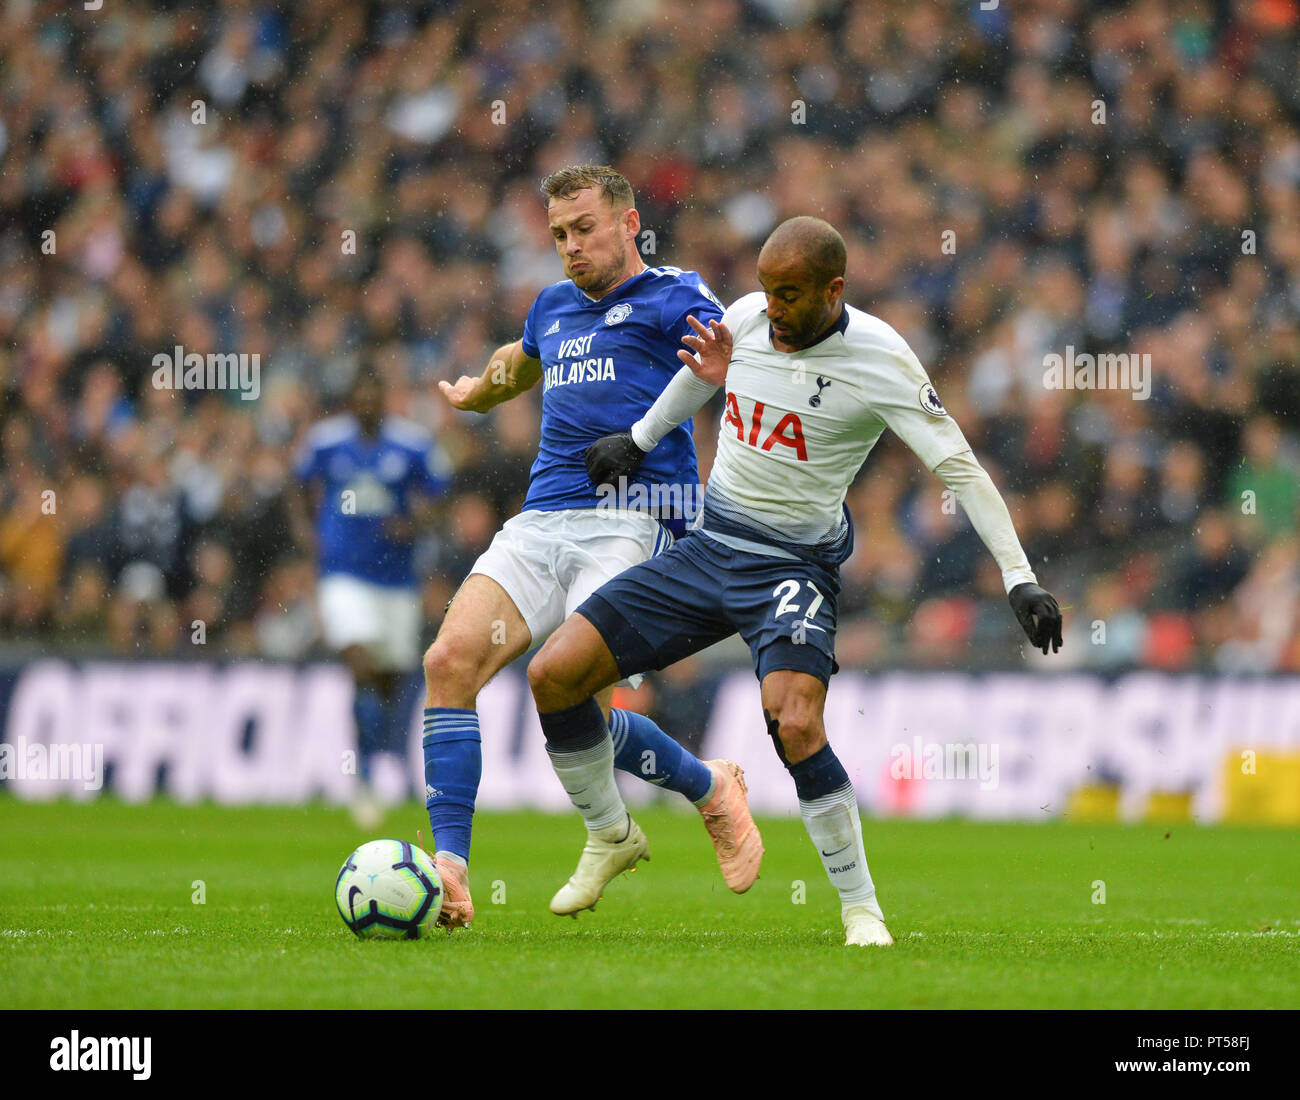 Lucas Moura Stock Photos & Lucas Moura Stock Images